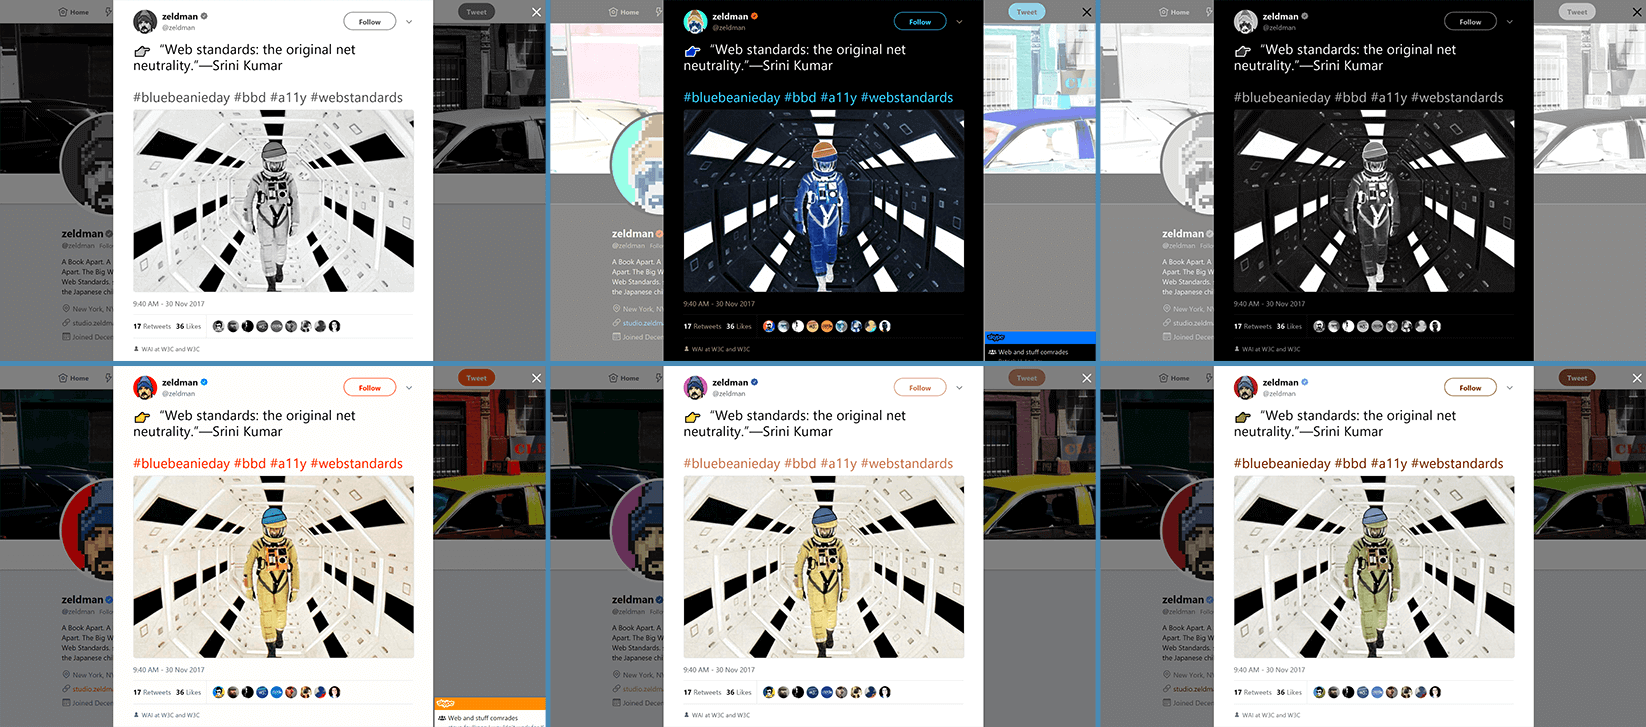 Series of screen shots of Zeldman's Blue Beanie Day tweet as viewed through Windows 10 color accessibility filters.